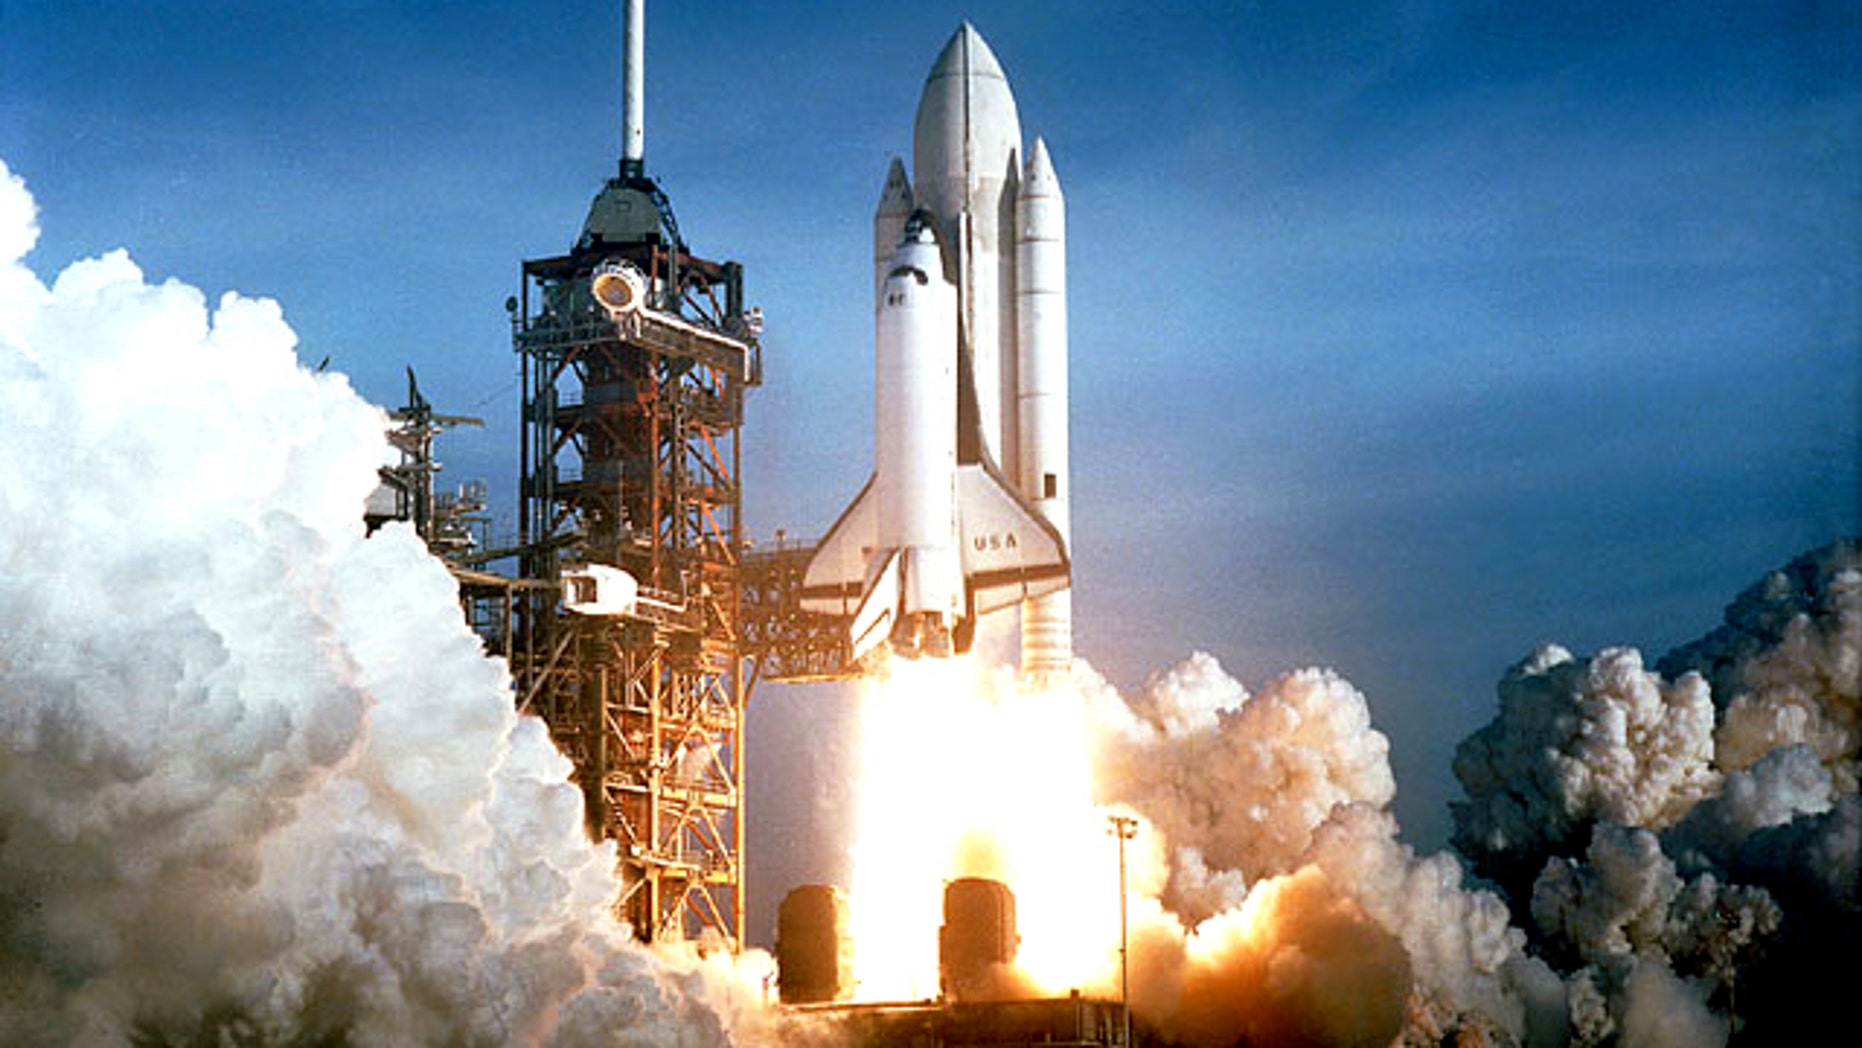 The shuttle Columbia lifts off on the first space shuttle mission ever, STS-1, on April 12, 1981.